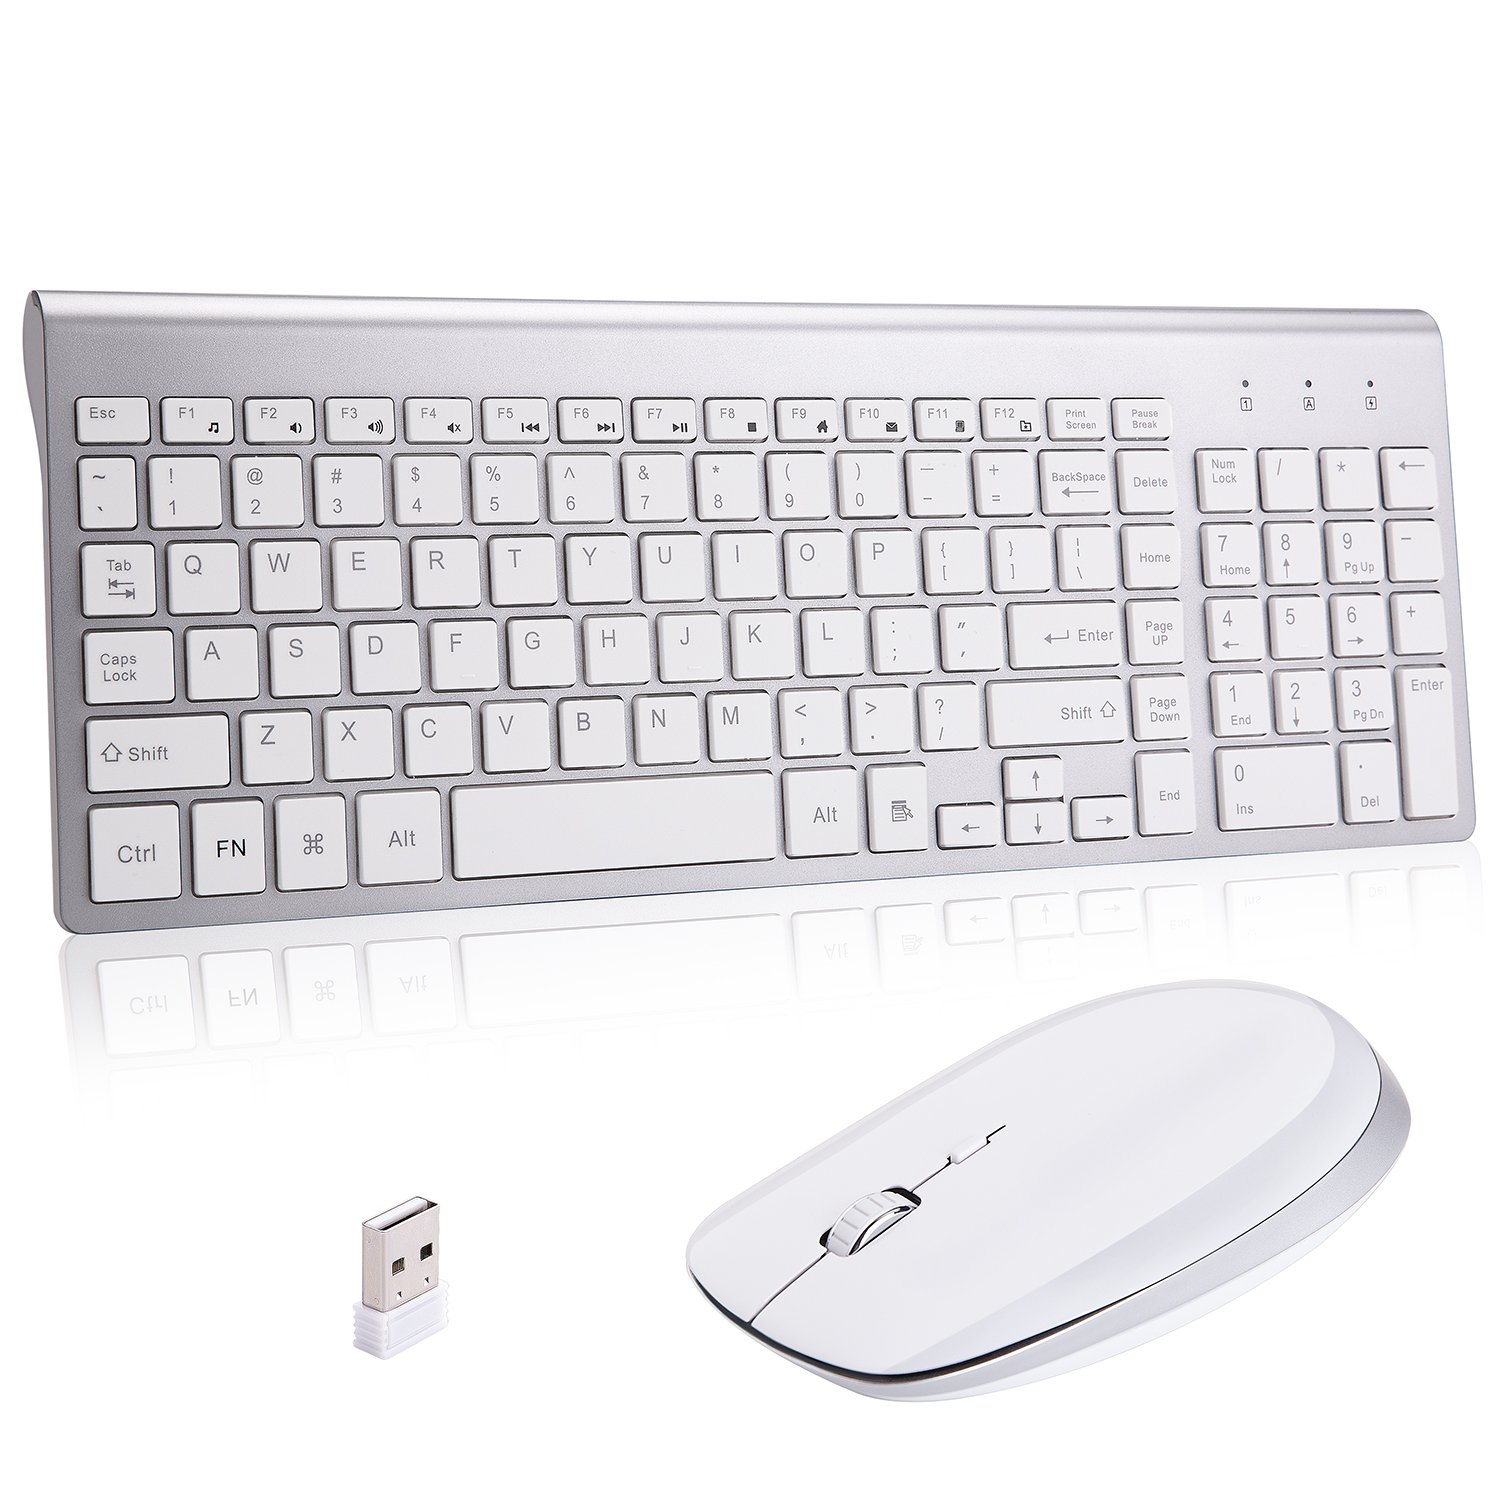 ea0b930eb37 Details about Mac Apple Wireless Keyboard And Mouse Combo Back Cover Magnet  2 in 1 Laptop PC